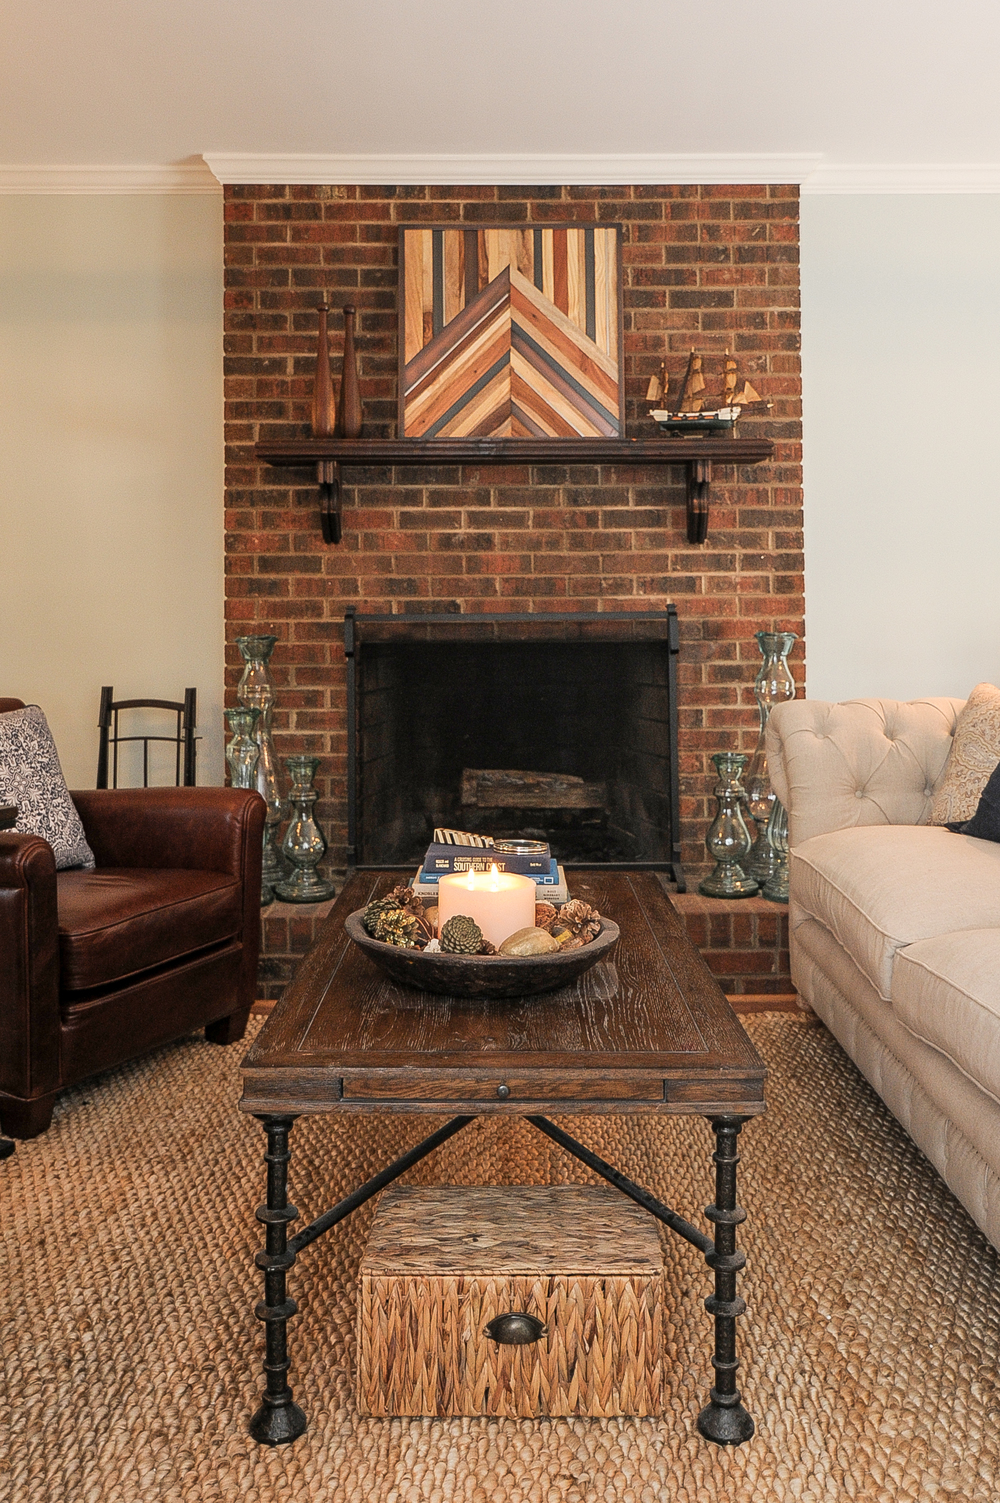 Artful Interiors - Bachelor Pad - Fireplace